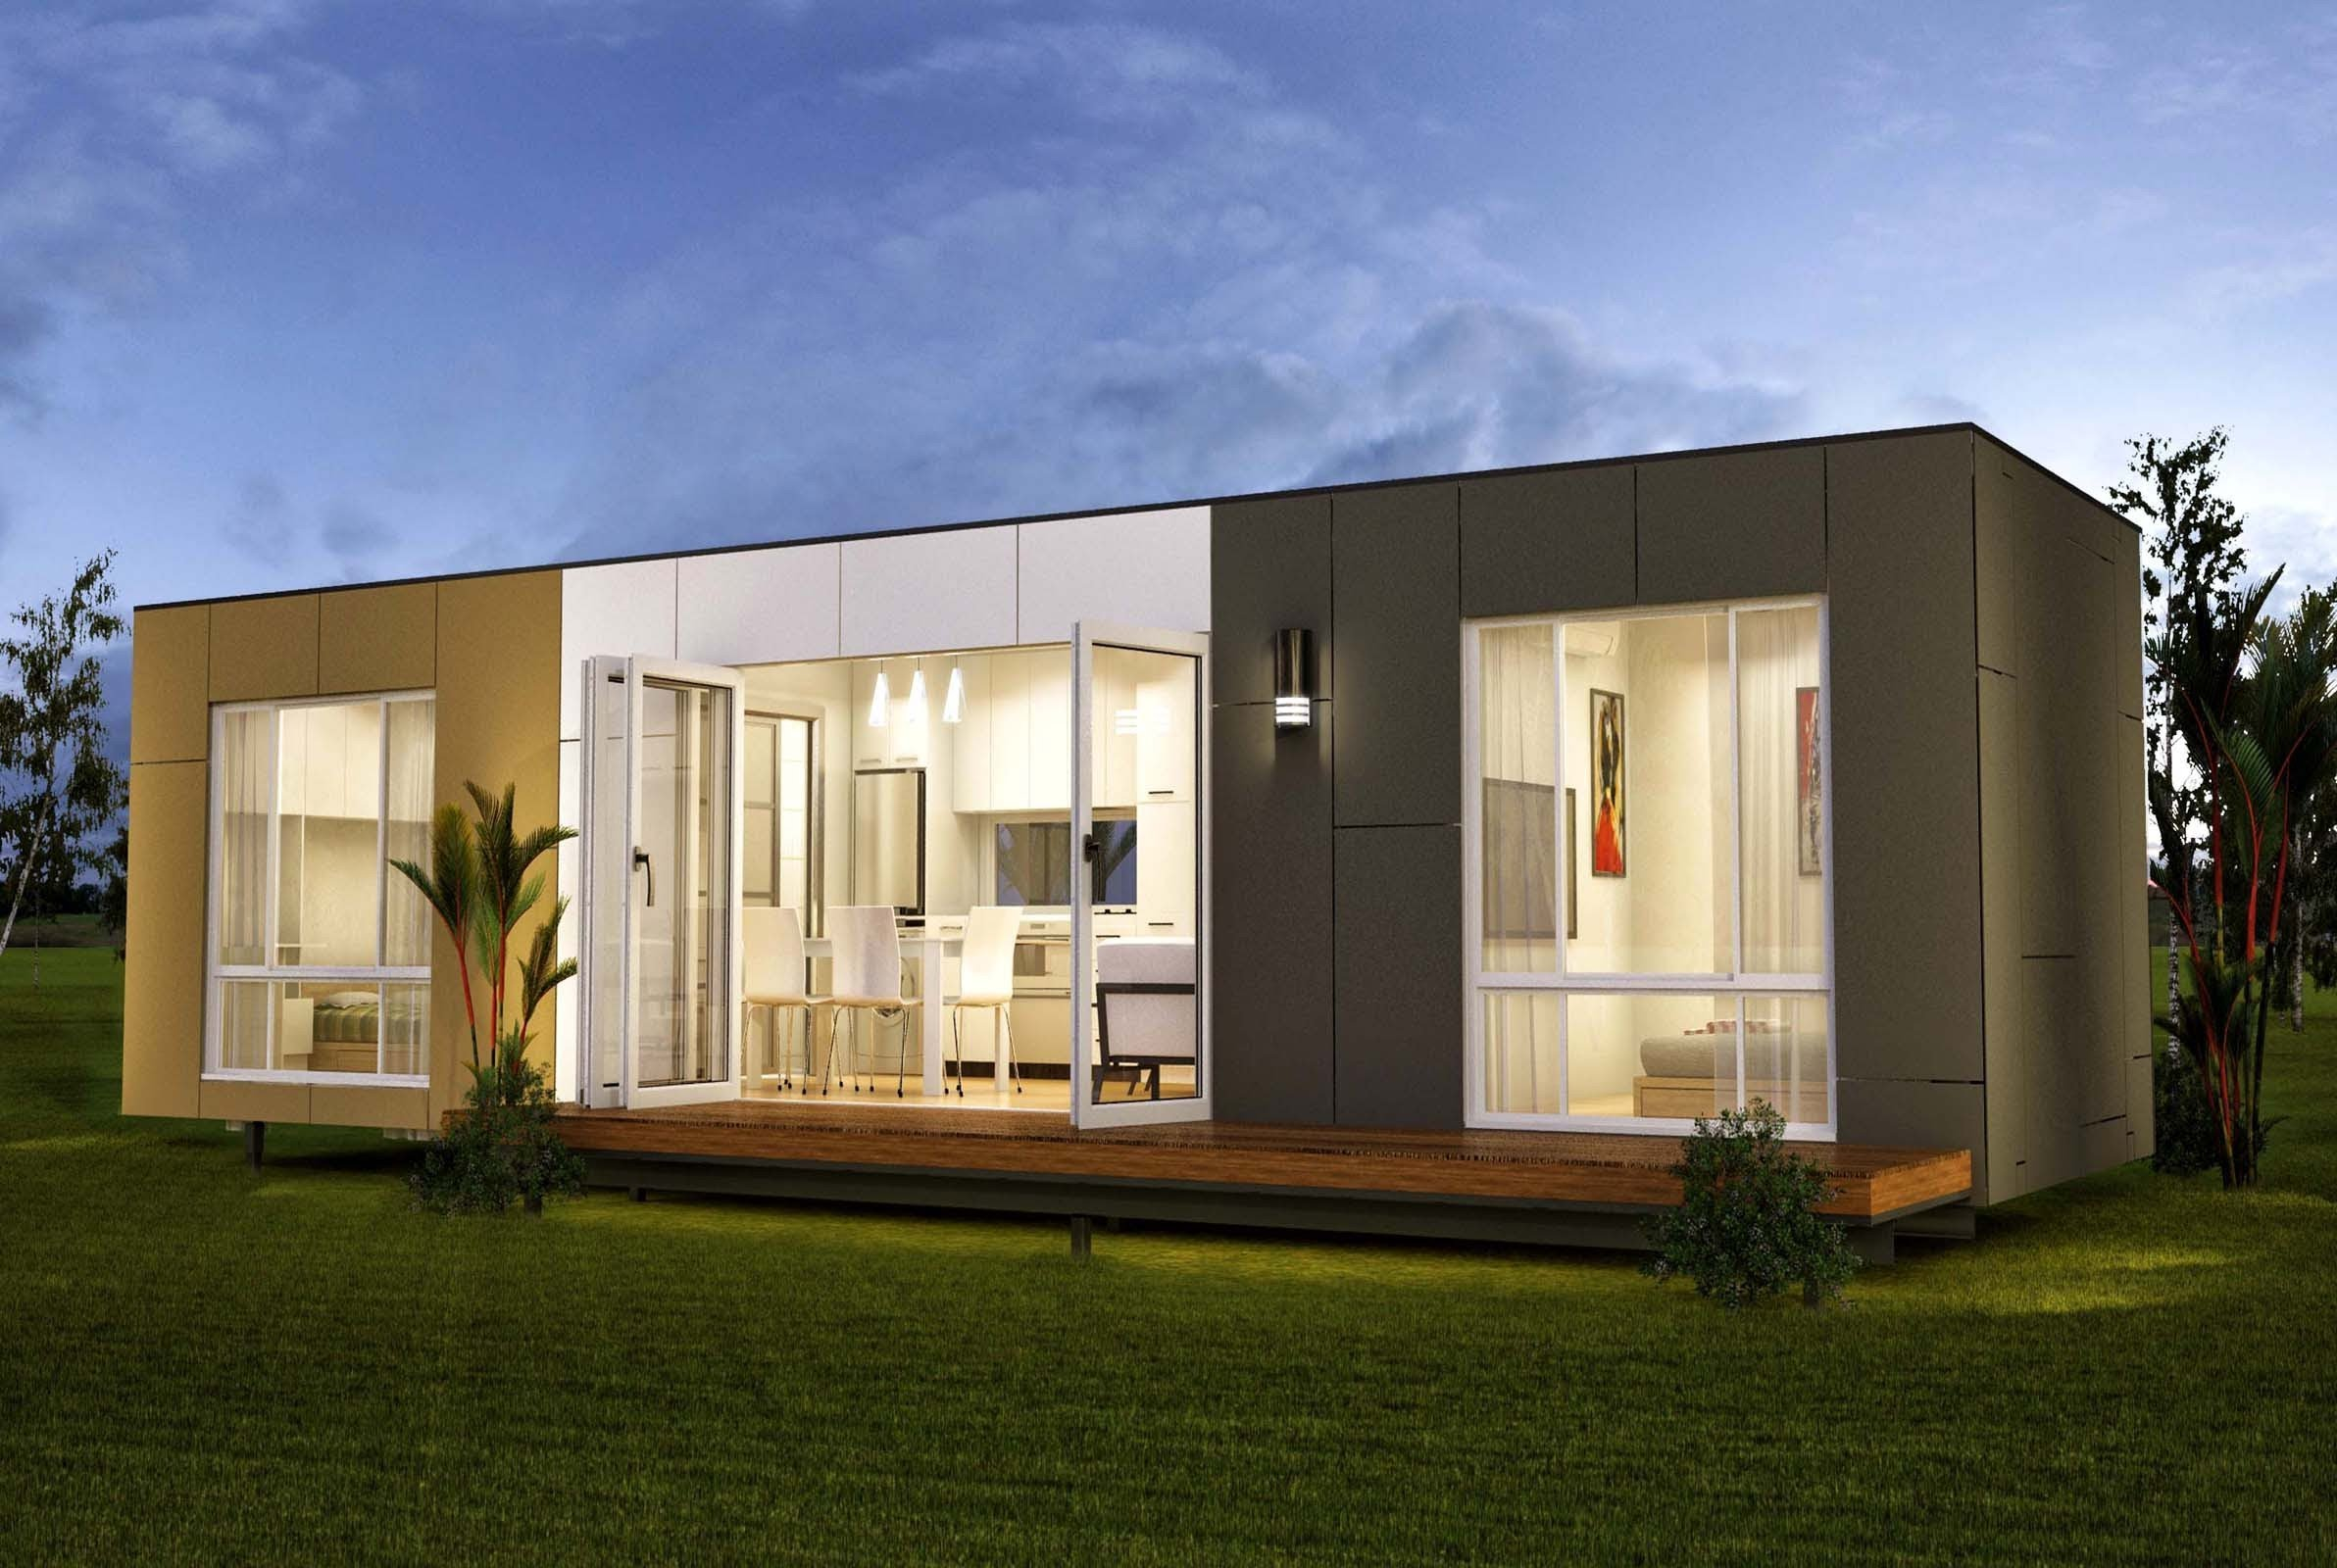 Innovative prefab container homes design and ideas for Architect designed modular homes